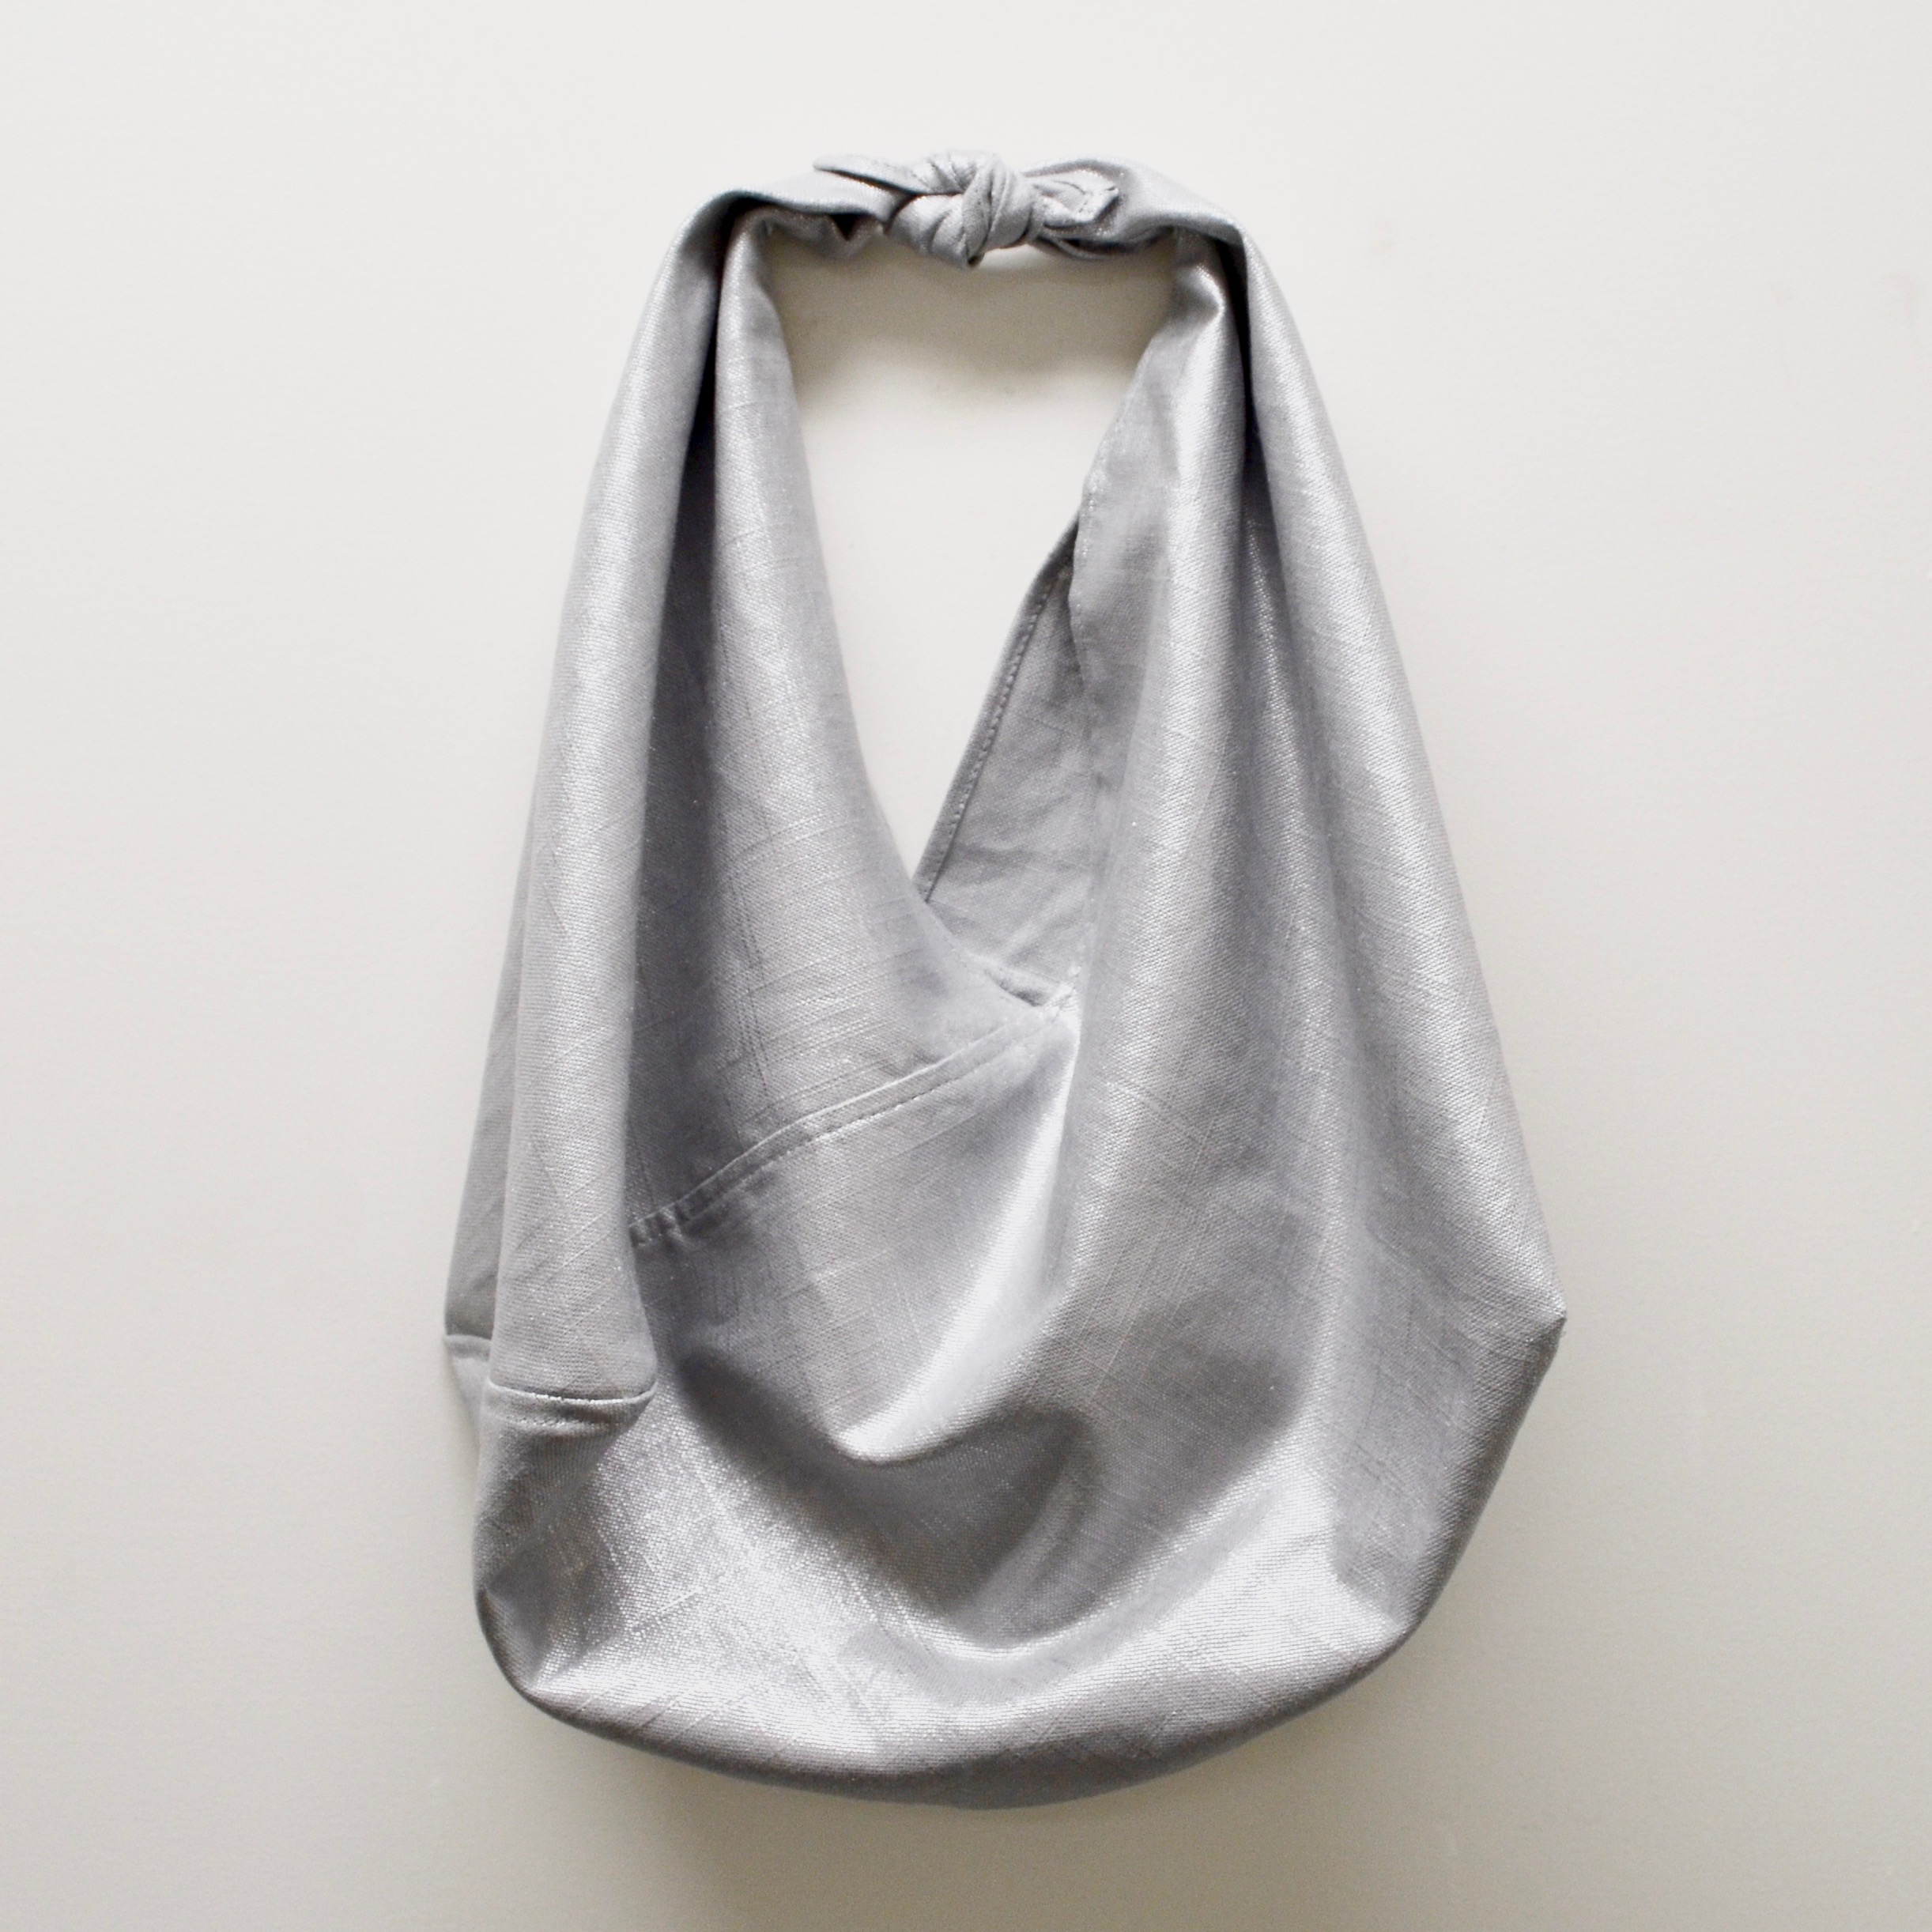 - MEDIUM LINEN BAG IN UNICORN SILVER